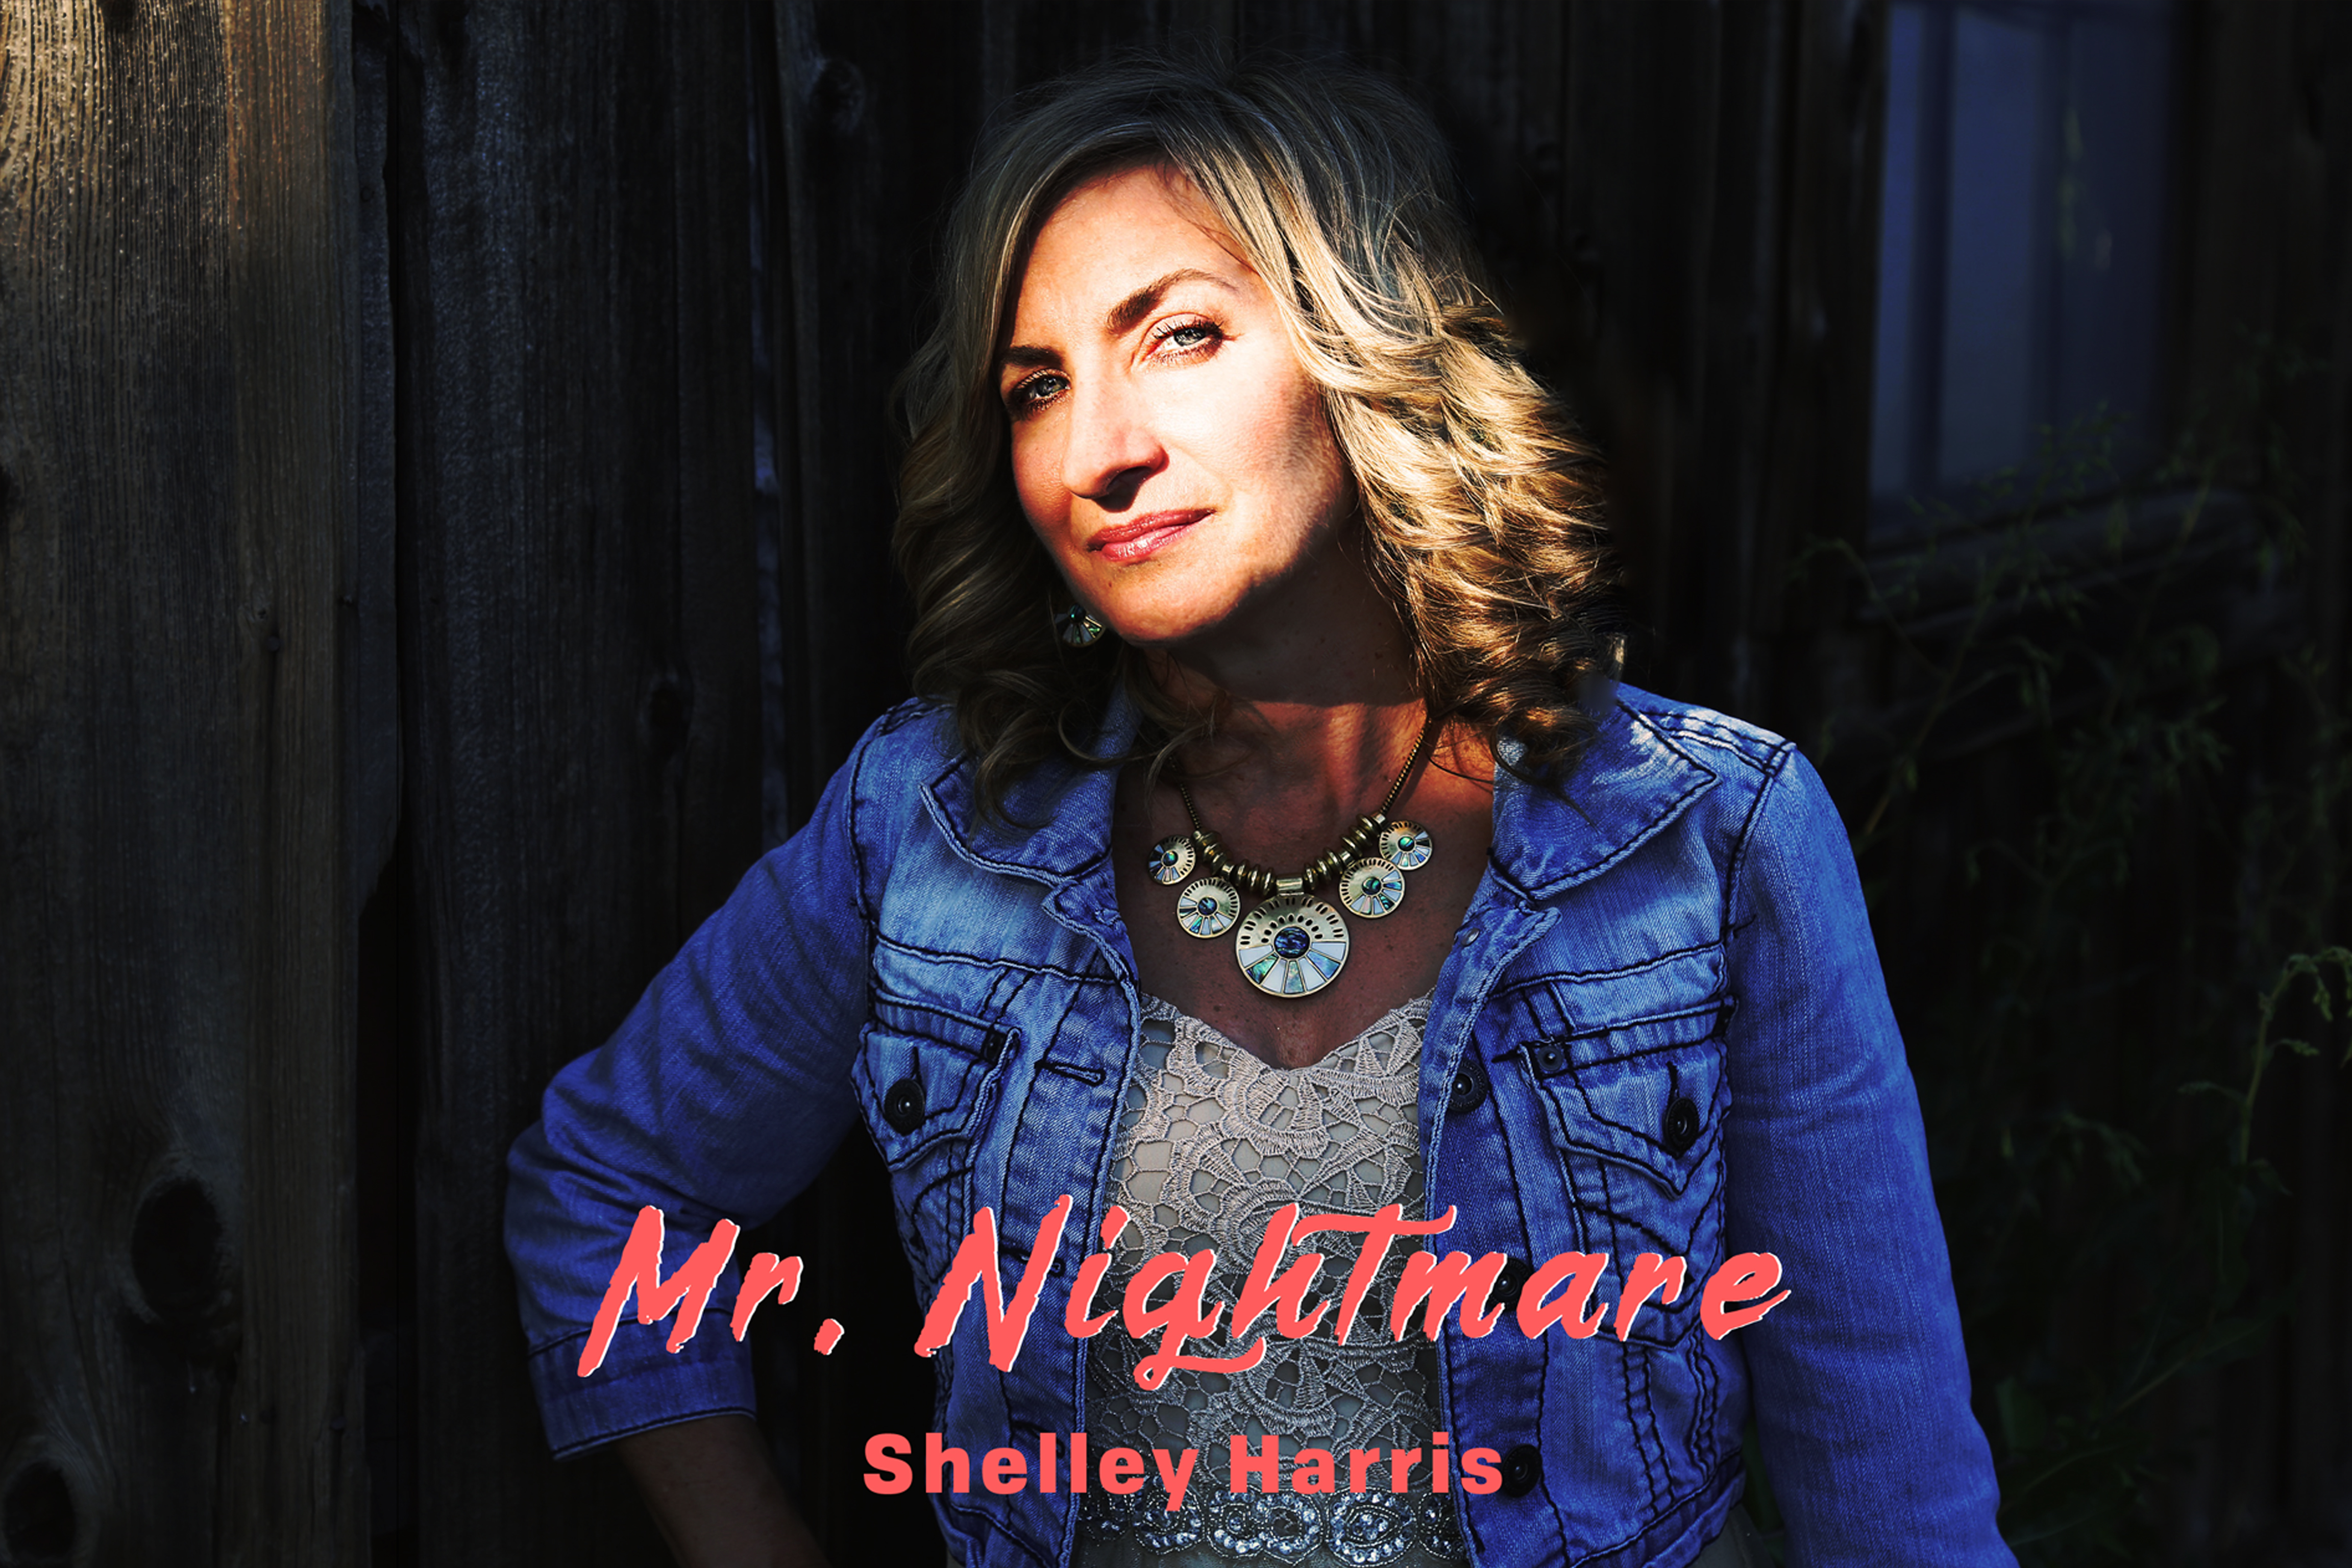 Mr Nightmare Shelley Rusk Music Back when i got into listening to scary stories, mr. shelley rusk